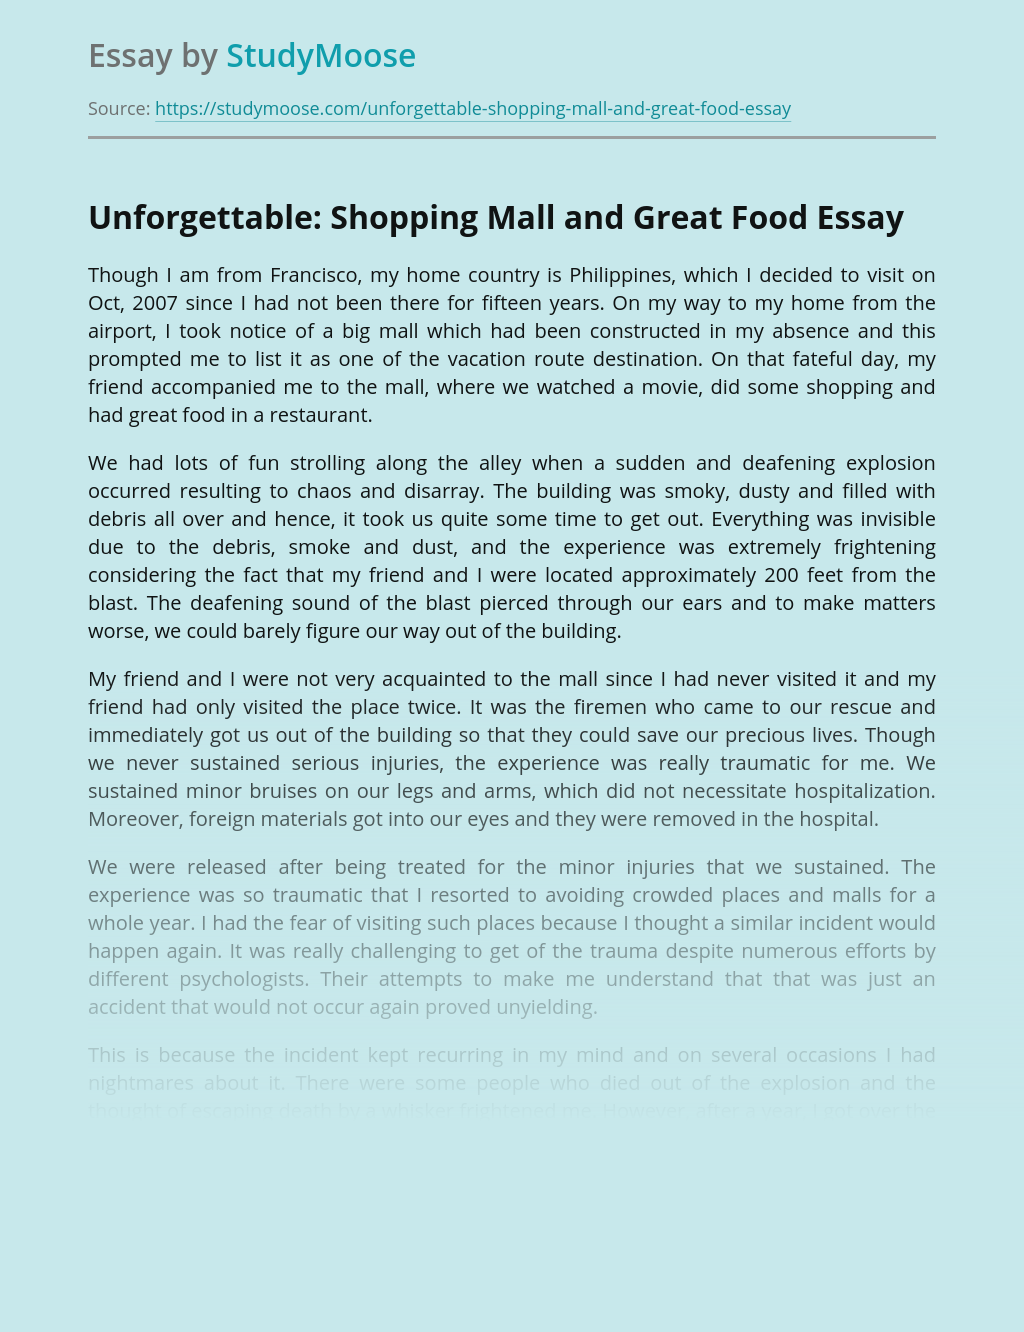 Unforgettable: Shopping Mall and Great Food